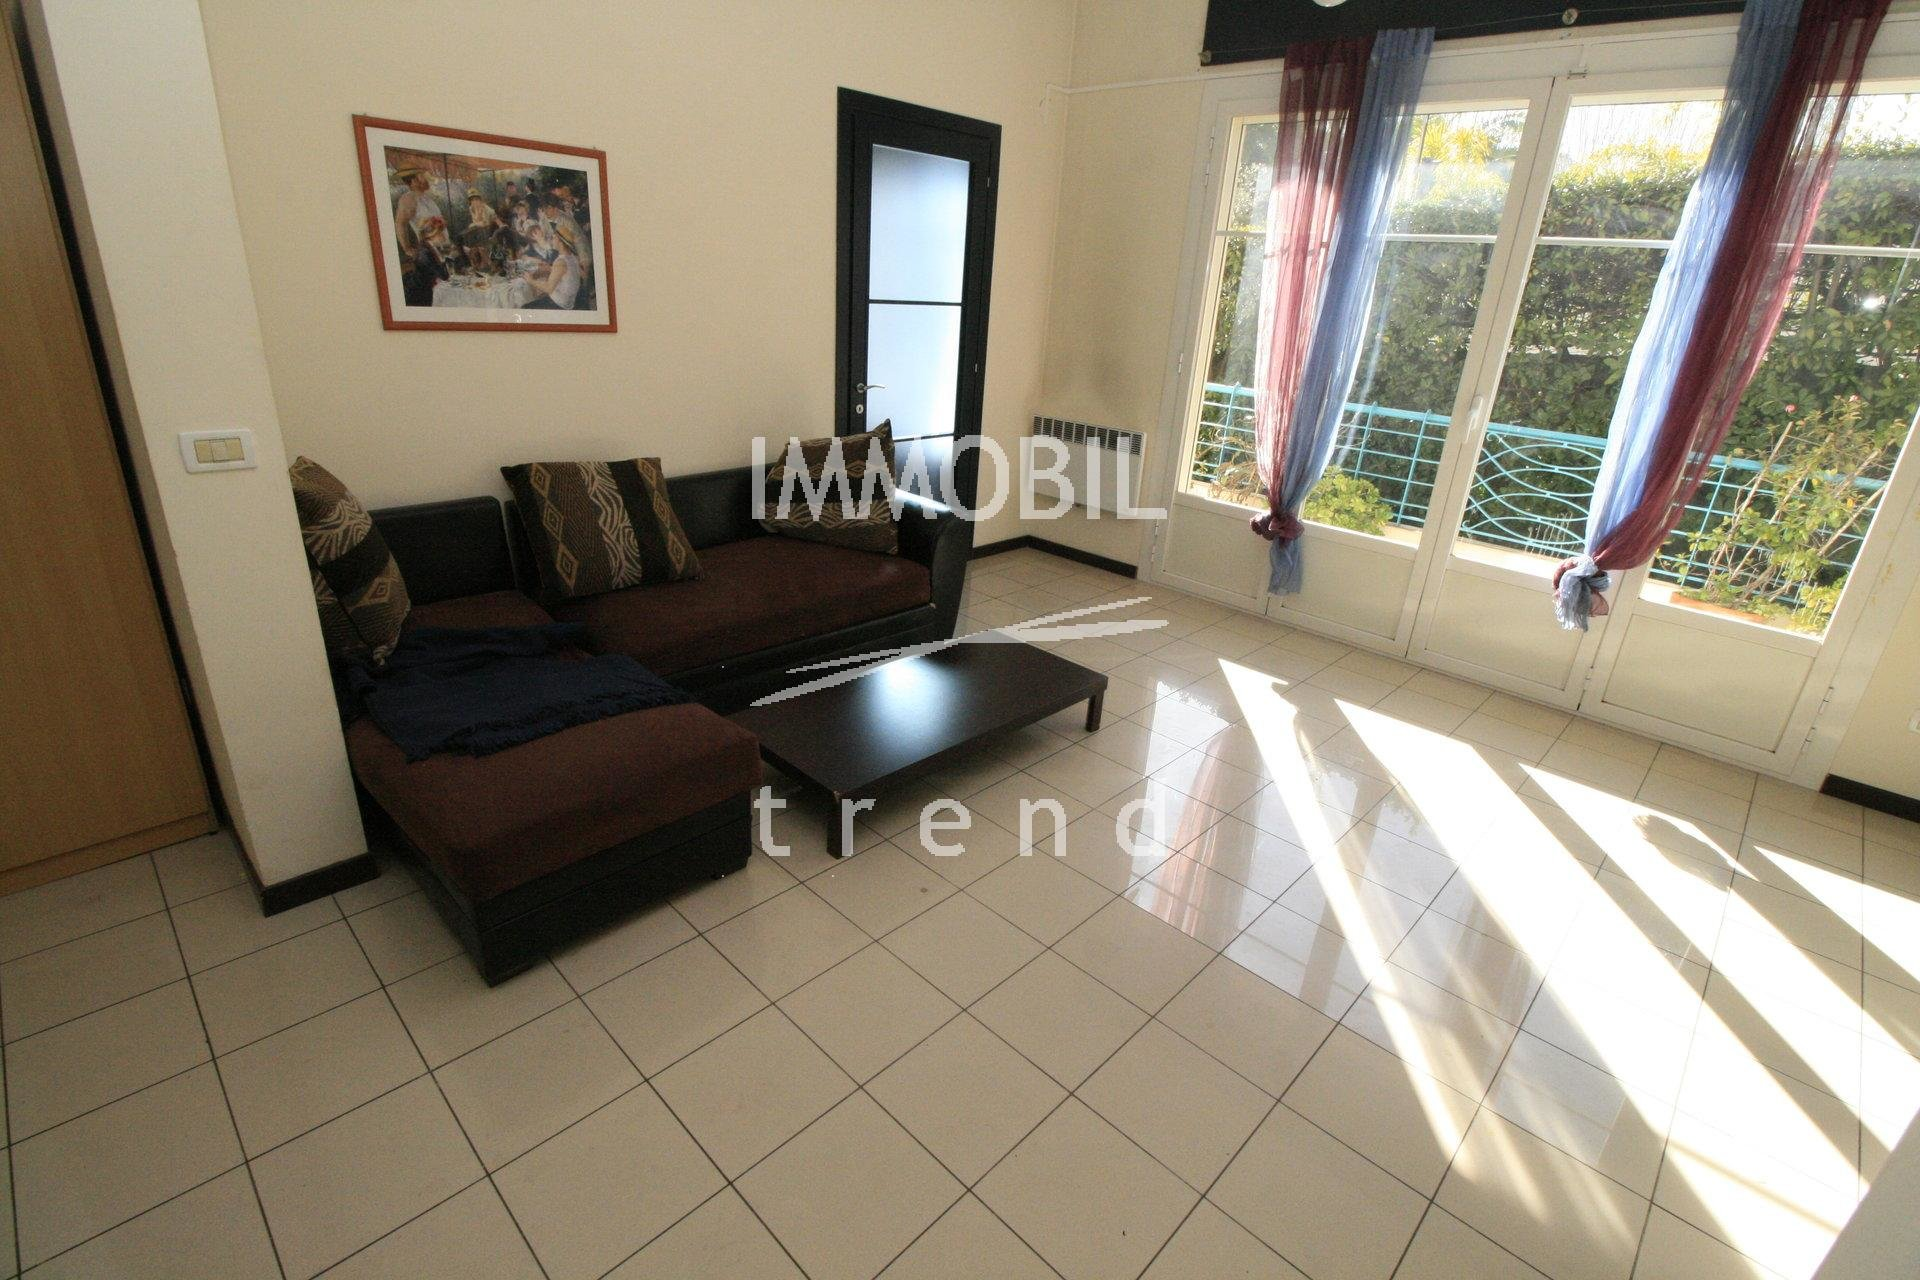 SOLE AGENT Menton Madone - 2 bedroom apartment for sale